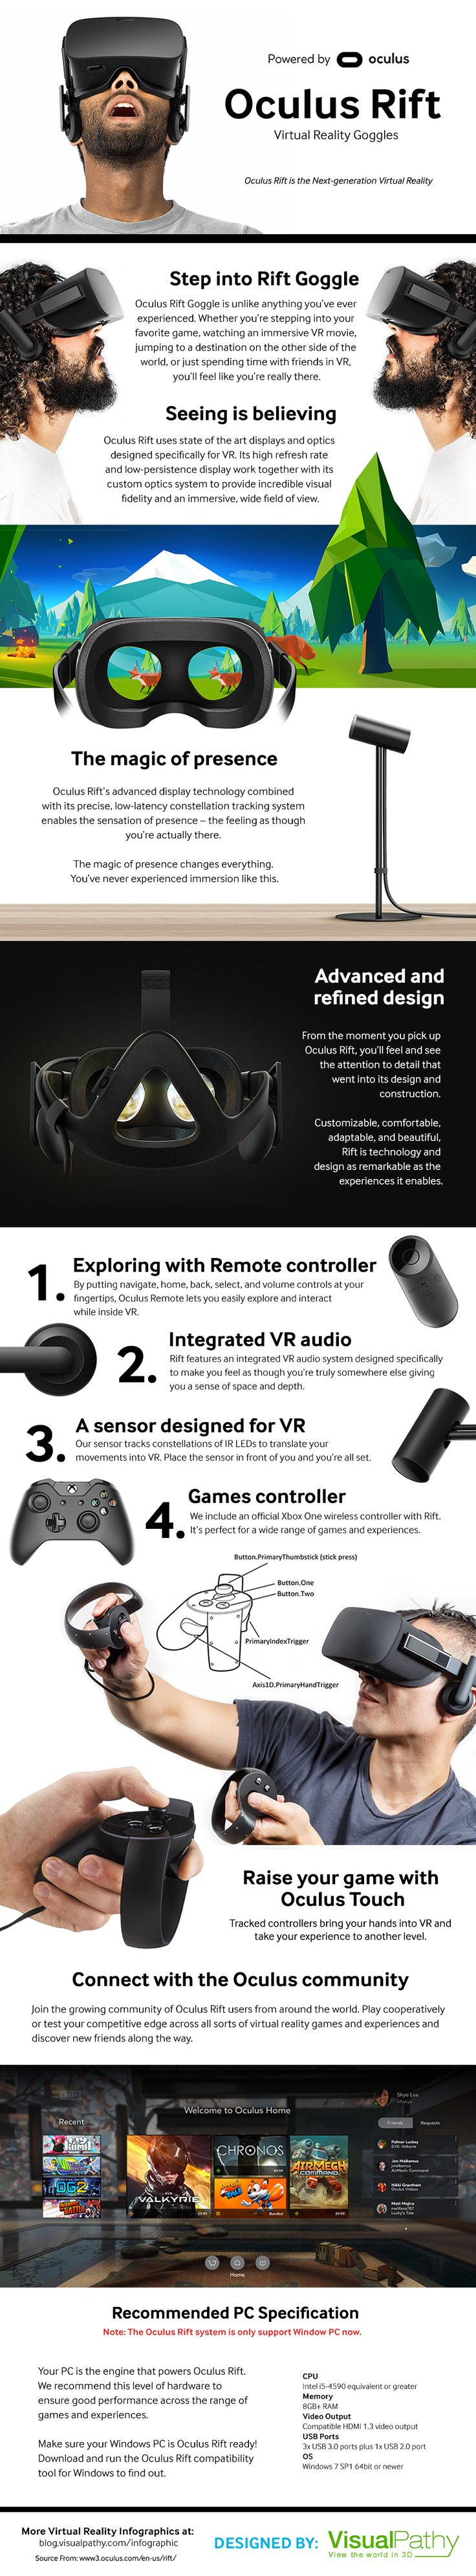 Oculus Rift Virtual Reality - https://blog.visualpathy.com/oculus-rift-virtual-reality/